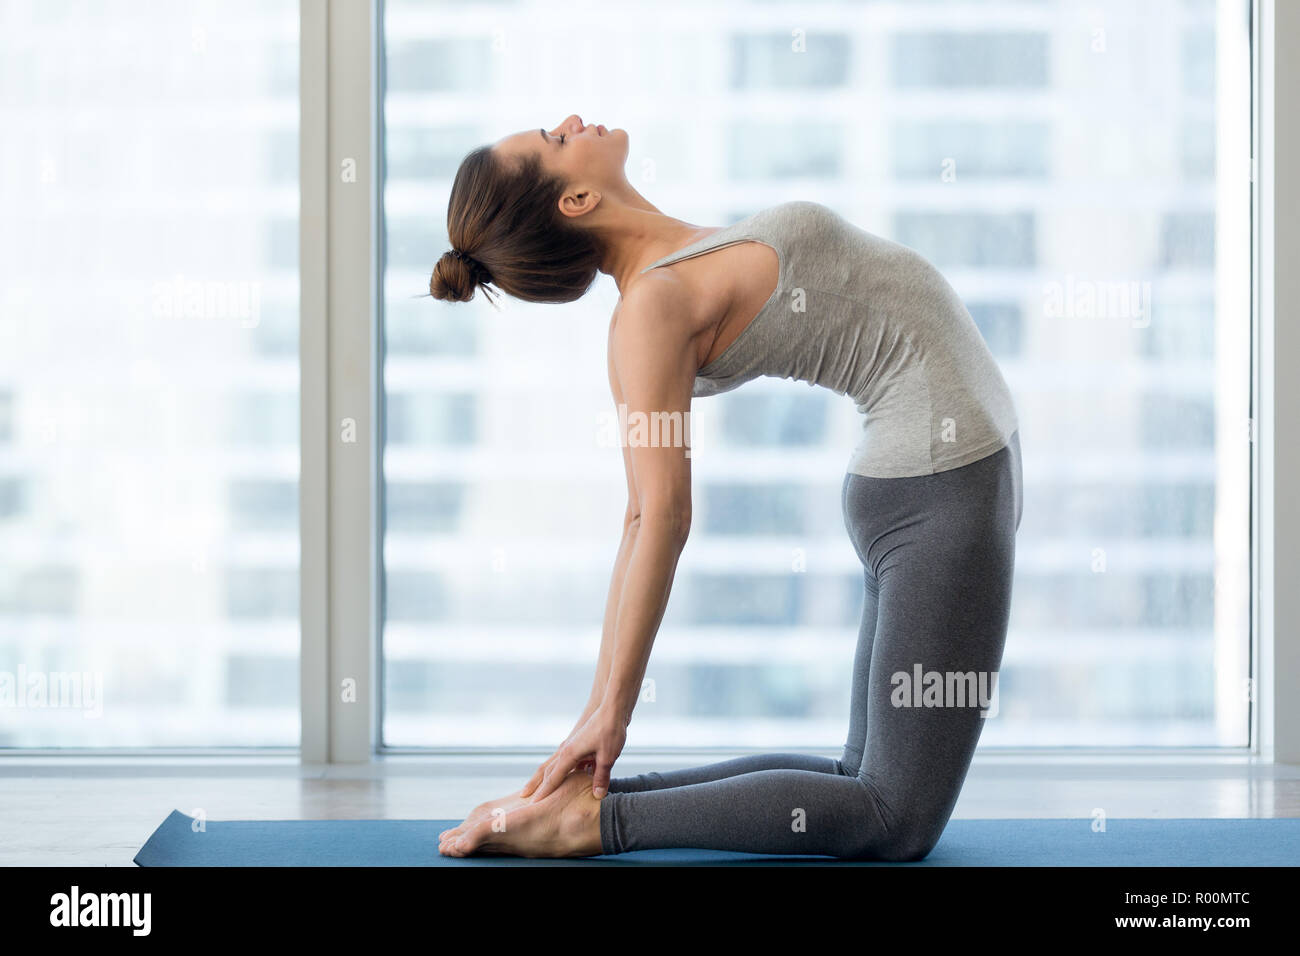 Young sporty woman practicing yoga, doing Ustrasana exercise, Camel pose, working out, wearing sportswear, grey pants and top, indoor full length, yog - Stock Image